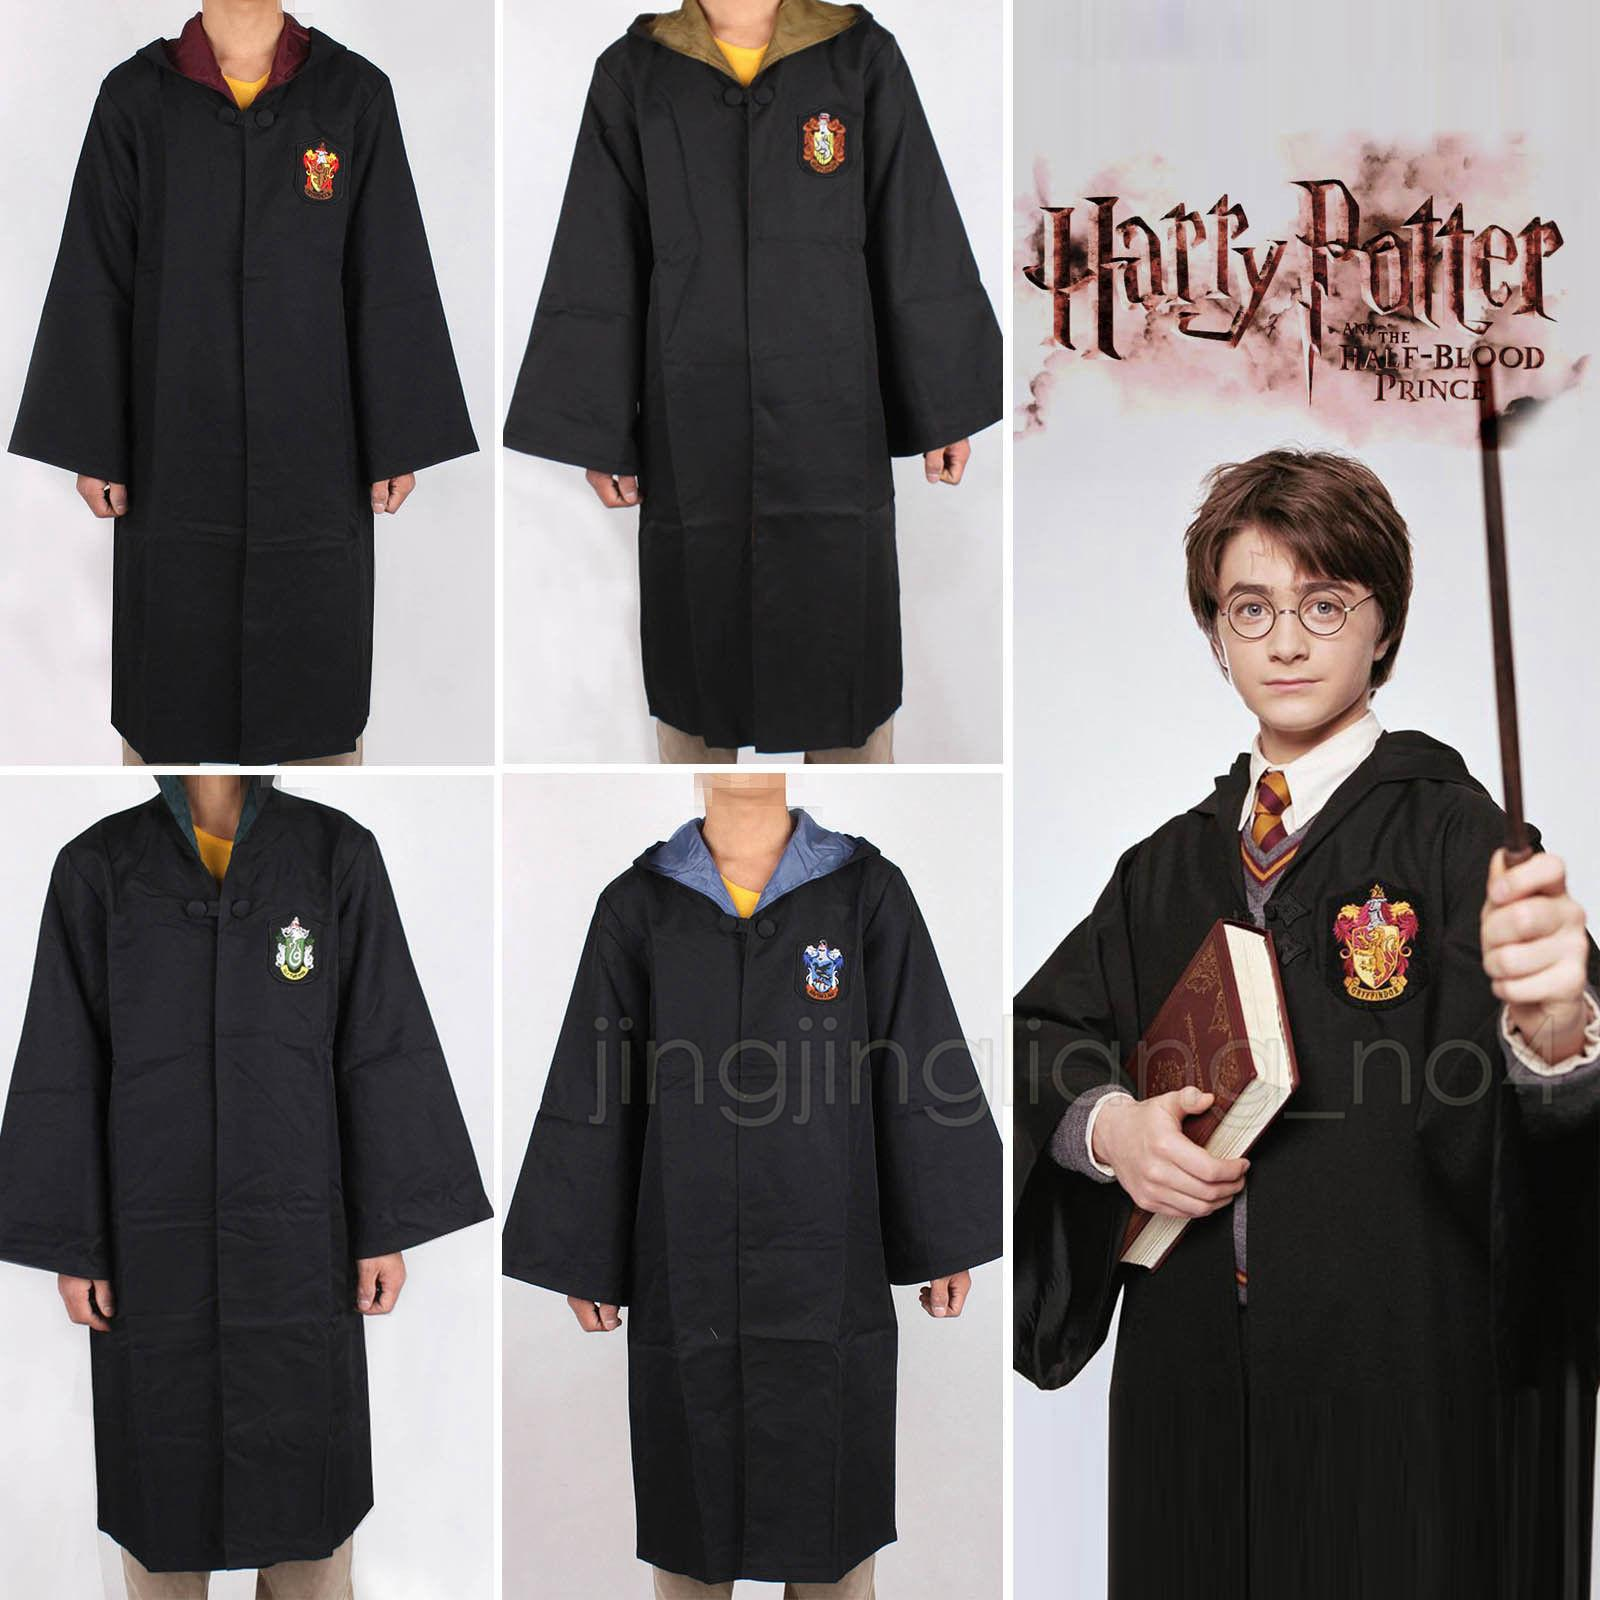 adult kids potter gryffindor cloak robe women men hufflepuff ravenclaw slytherin clothing for harries halloween costume cosplay dda600 family group